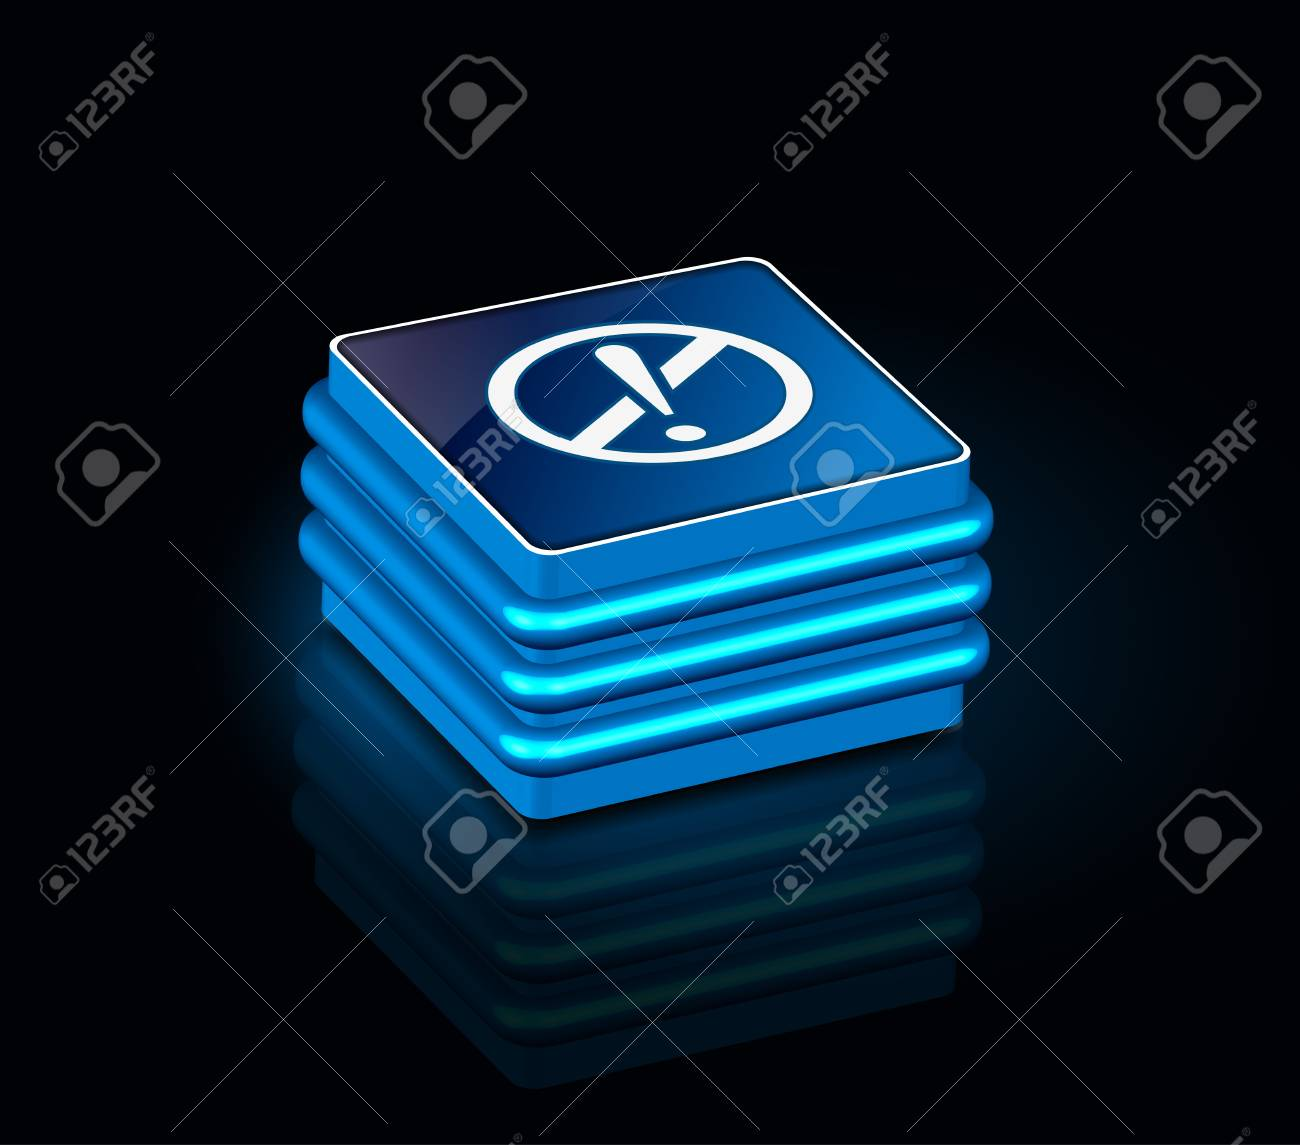 3d glossy attention icon, blue isolated on black background. Stock Vector - 8958355